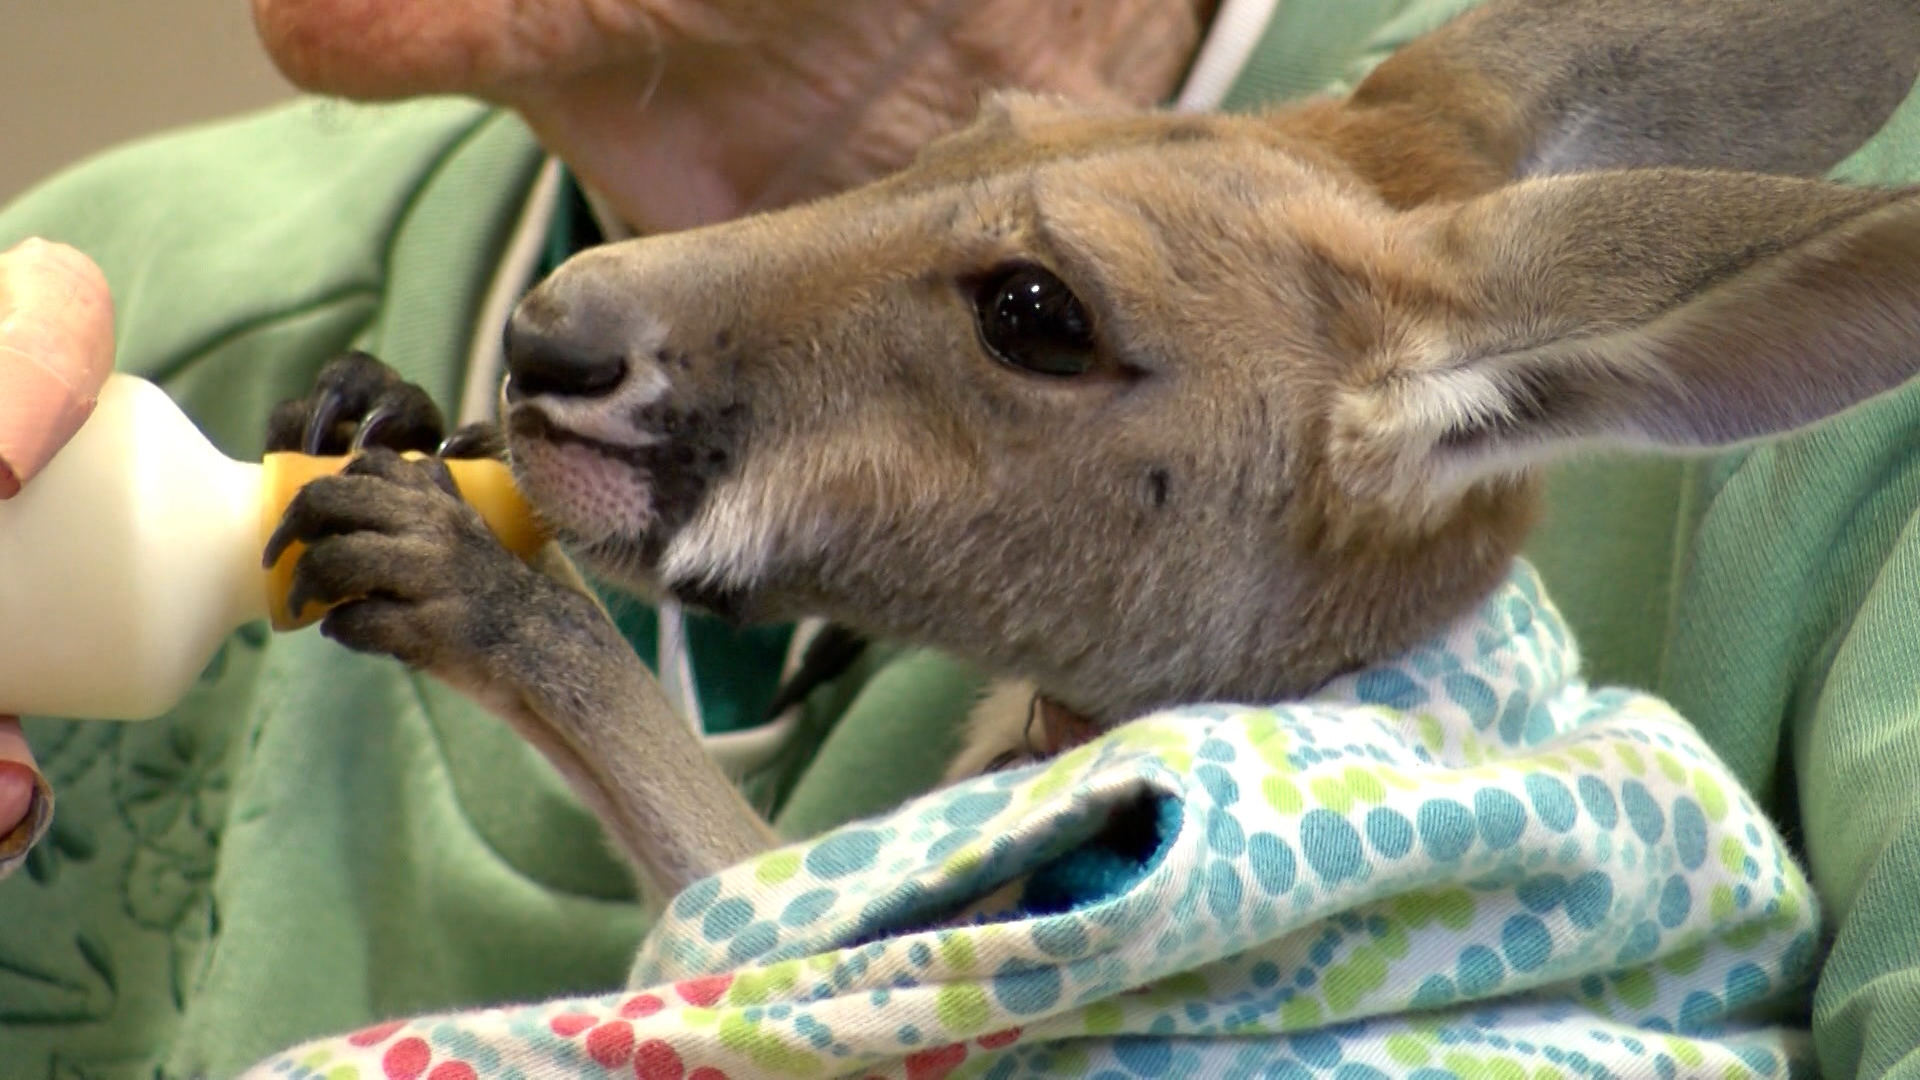 Baby kangaroo gives new meaning to therapy animal